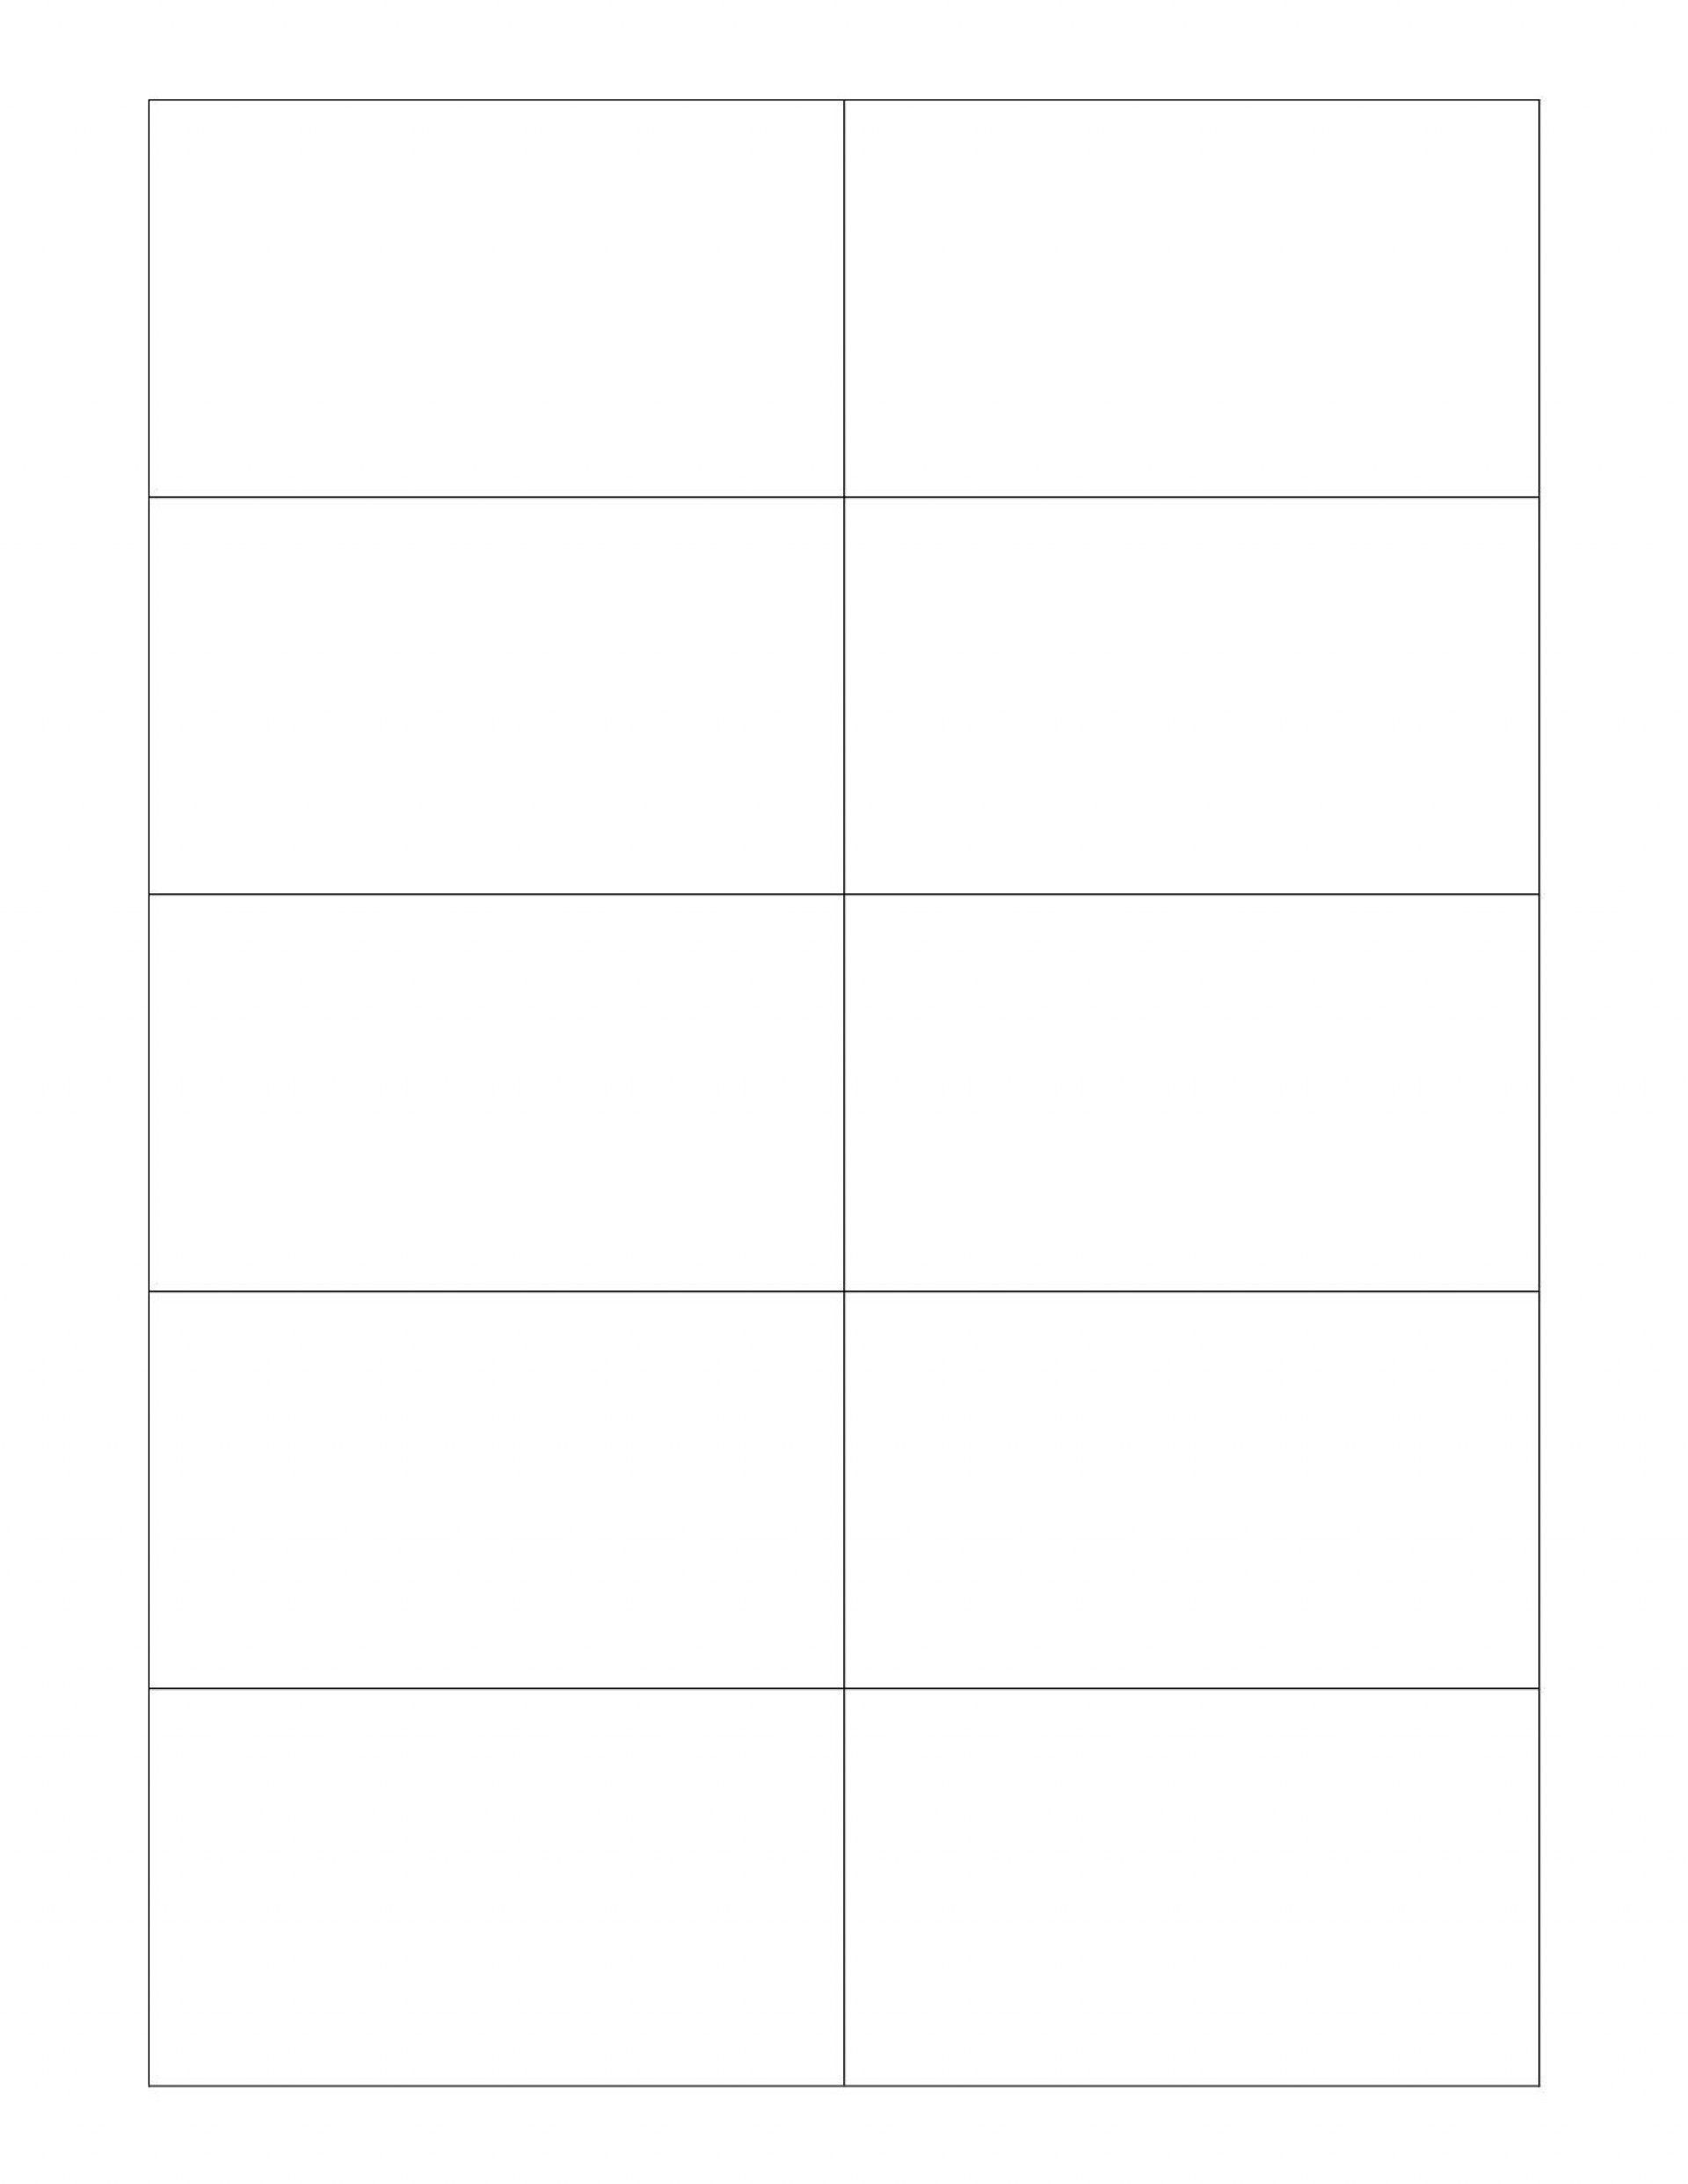 000 Unique Busines Card Template Microsoft Word Highest Clarity  Avery 8 Per Page How To Make A Layout On1920